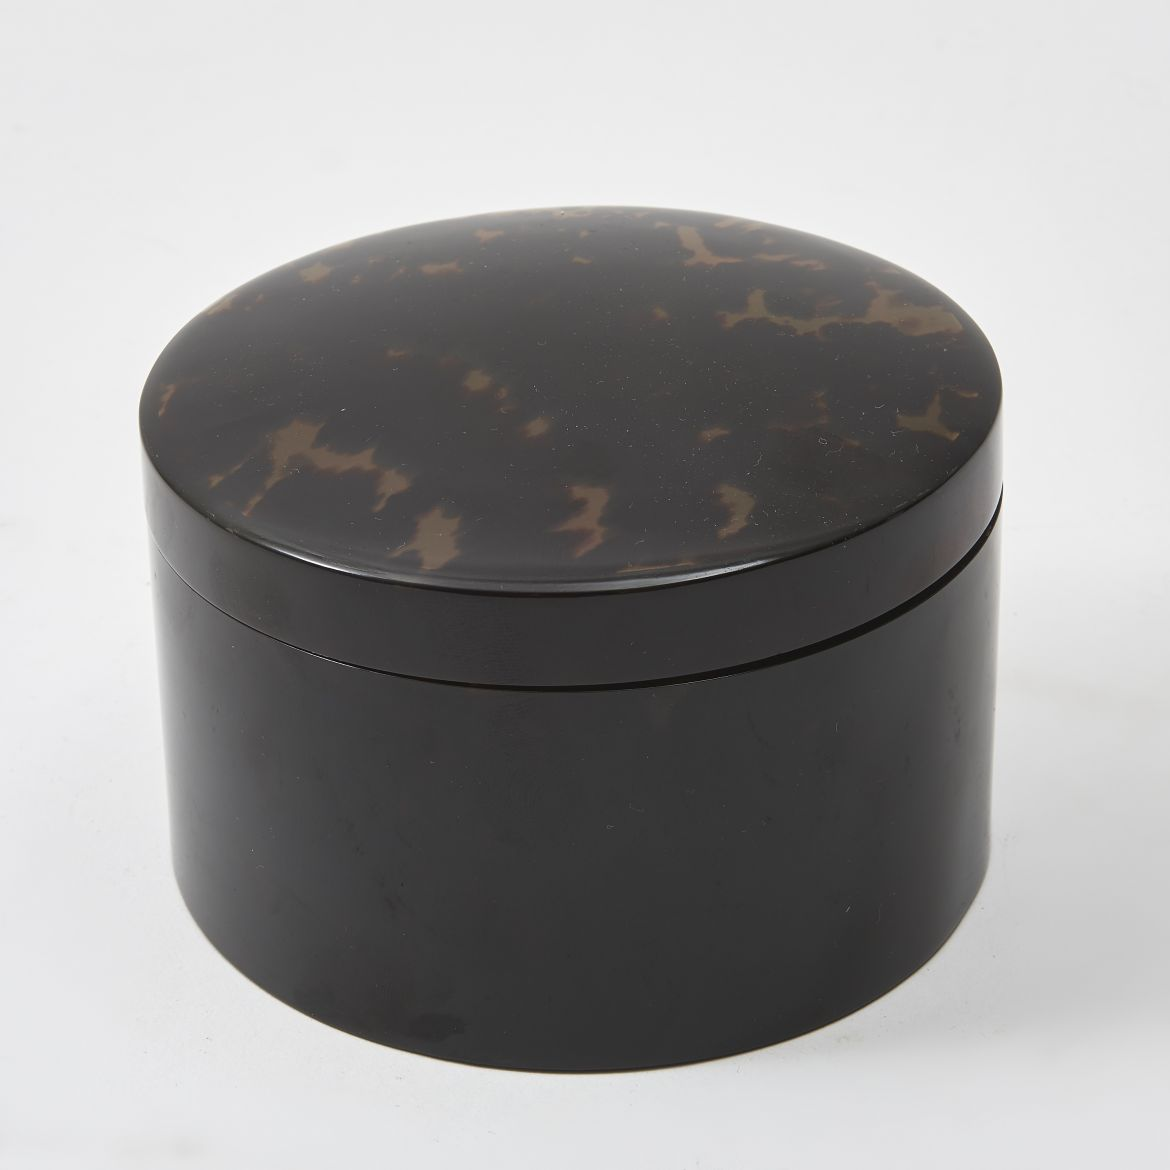 Tortoiseshell Powder Pot